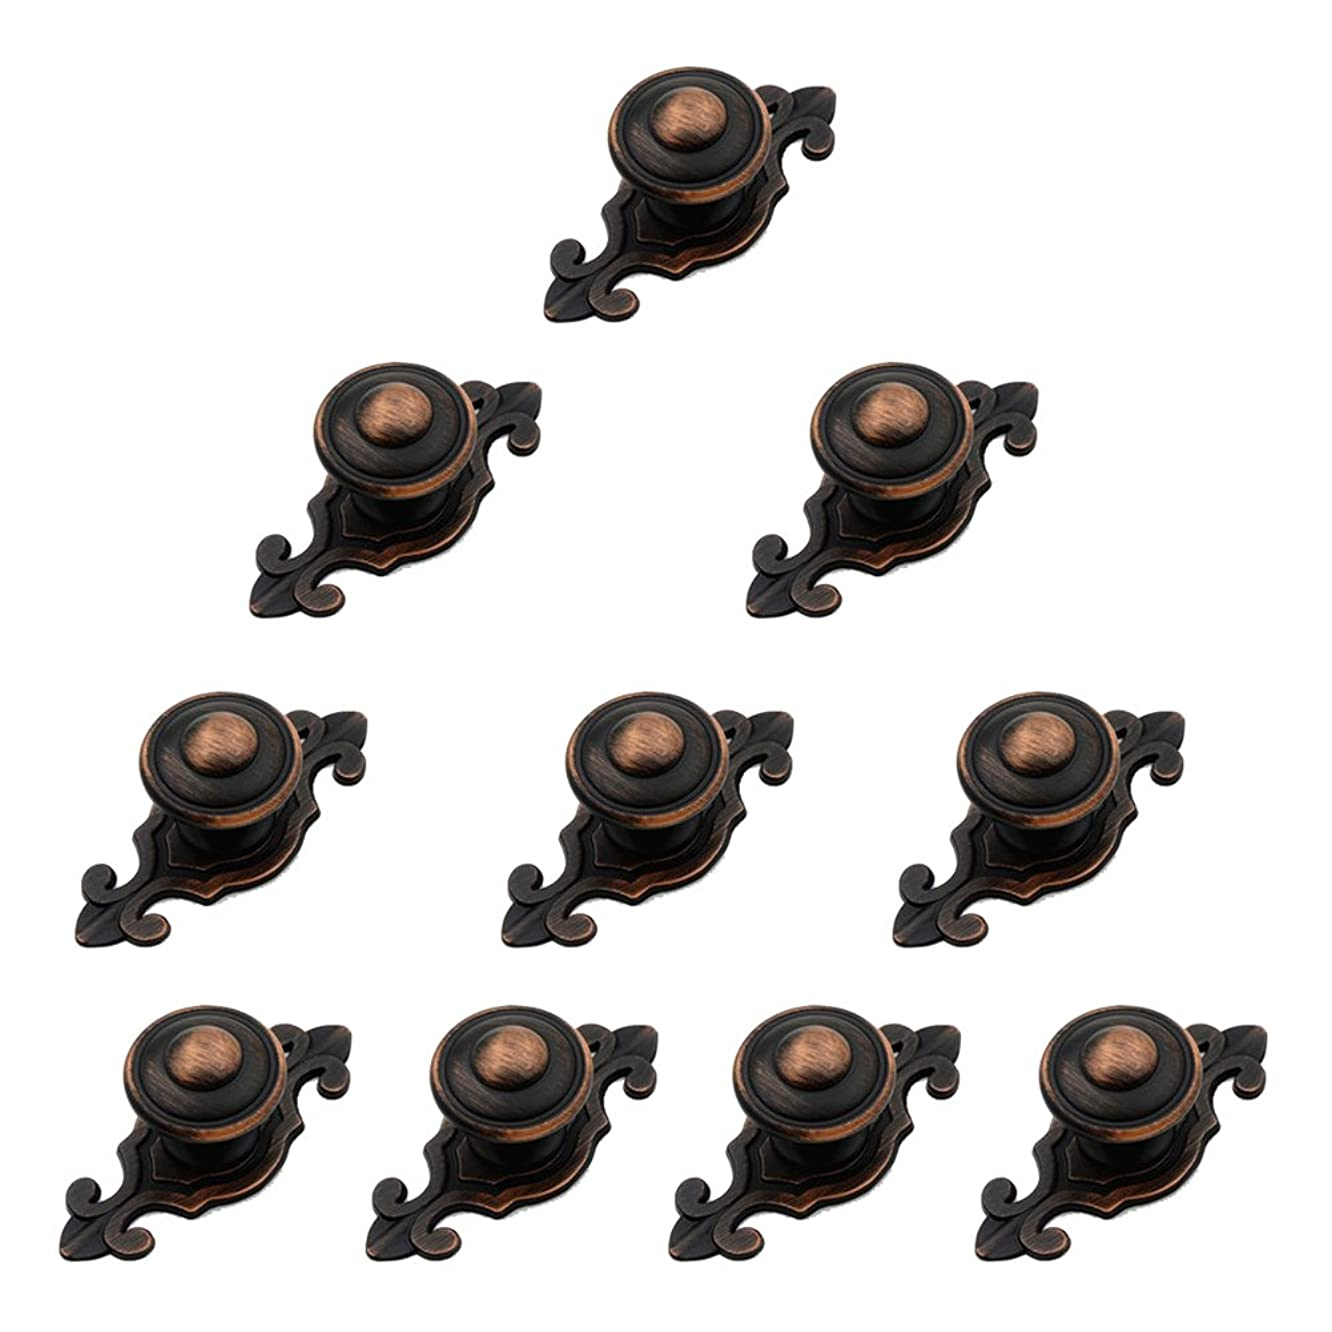 LEICHI Oil Rubbed Vintage Cabinet Handles Furniture Knobs Door Knob Cupboards Wardrobe Hardware Handle Pack of 10